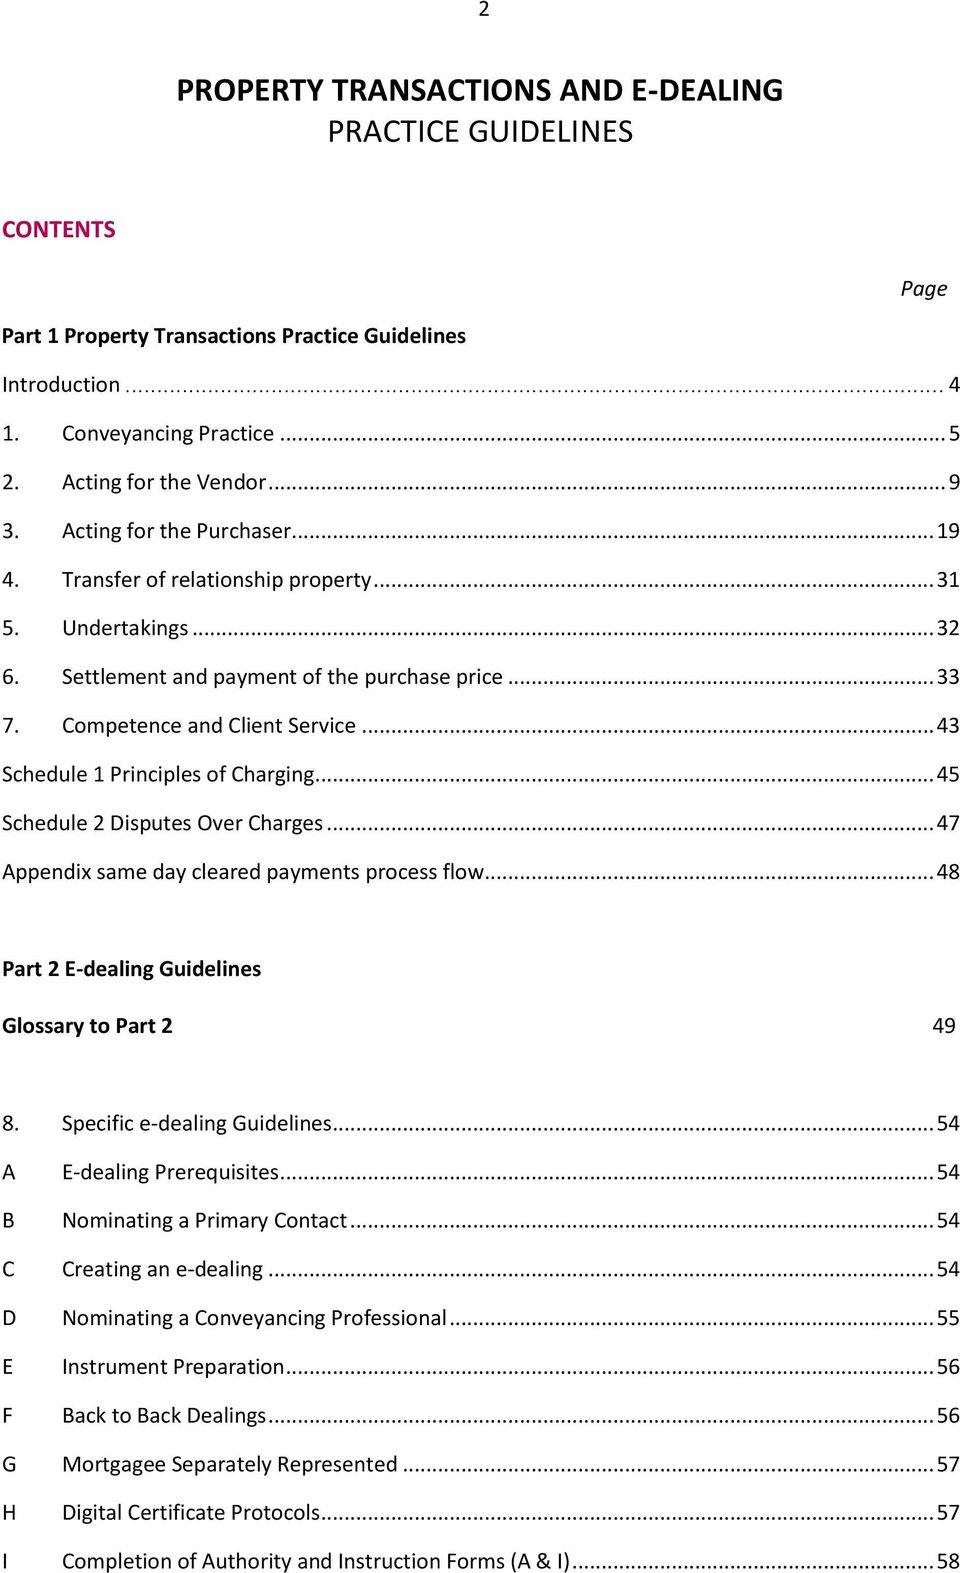 PROPERTY TRANSACTIONS AND E-DEALING PRACTICE GUIDELINES - PDF